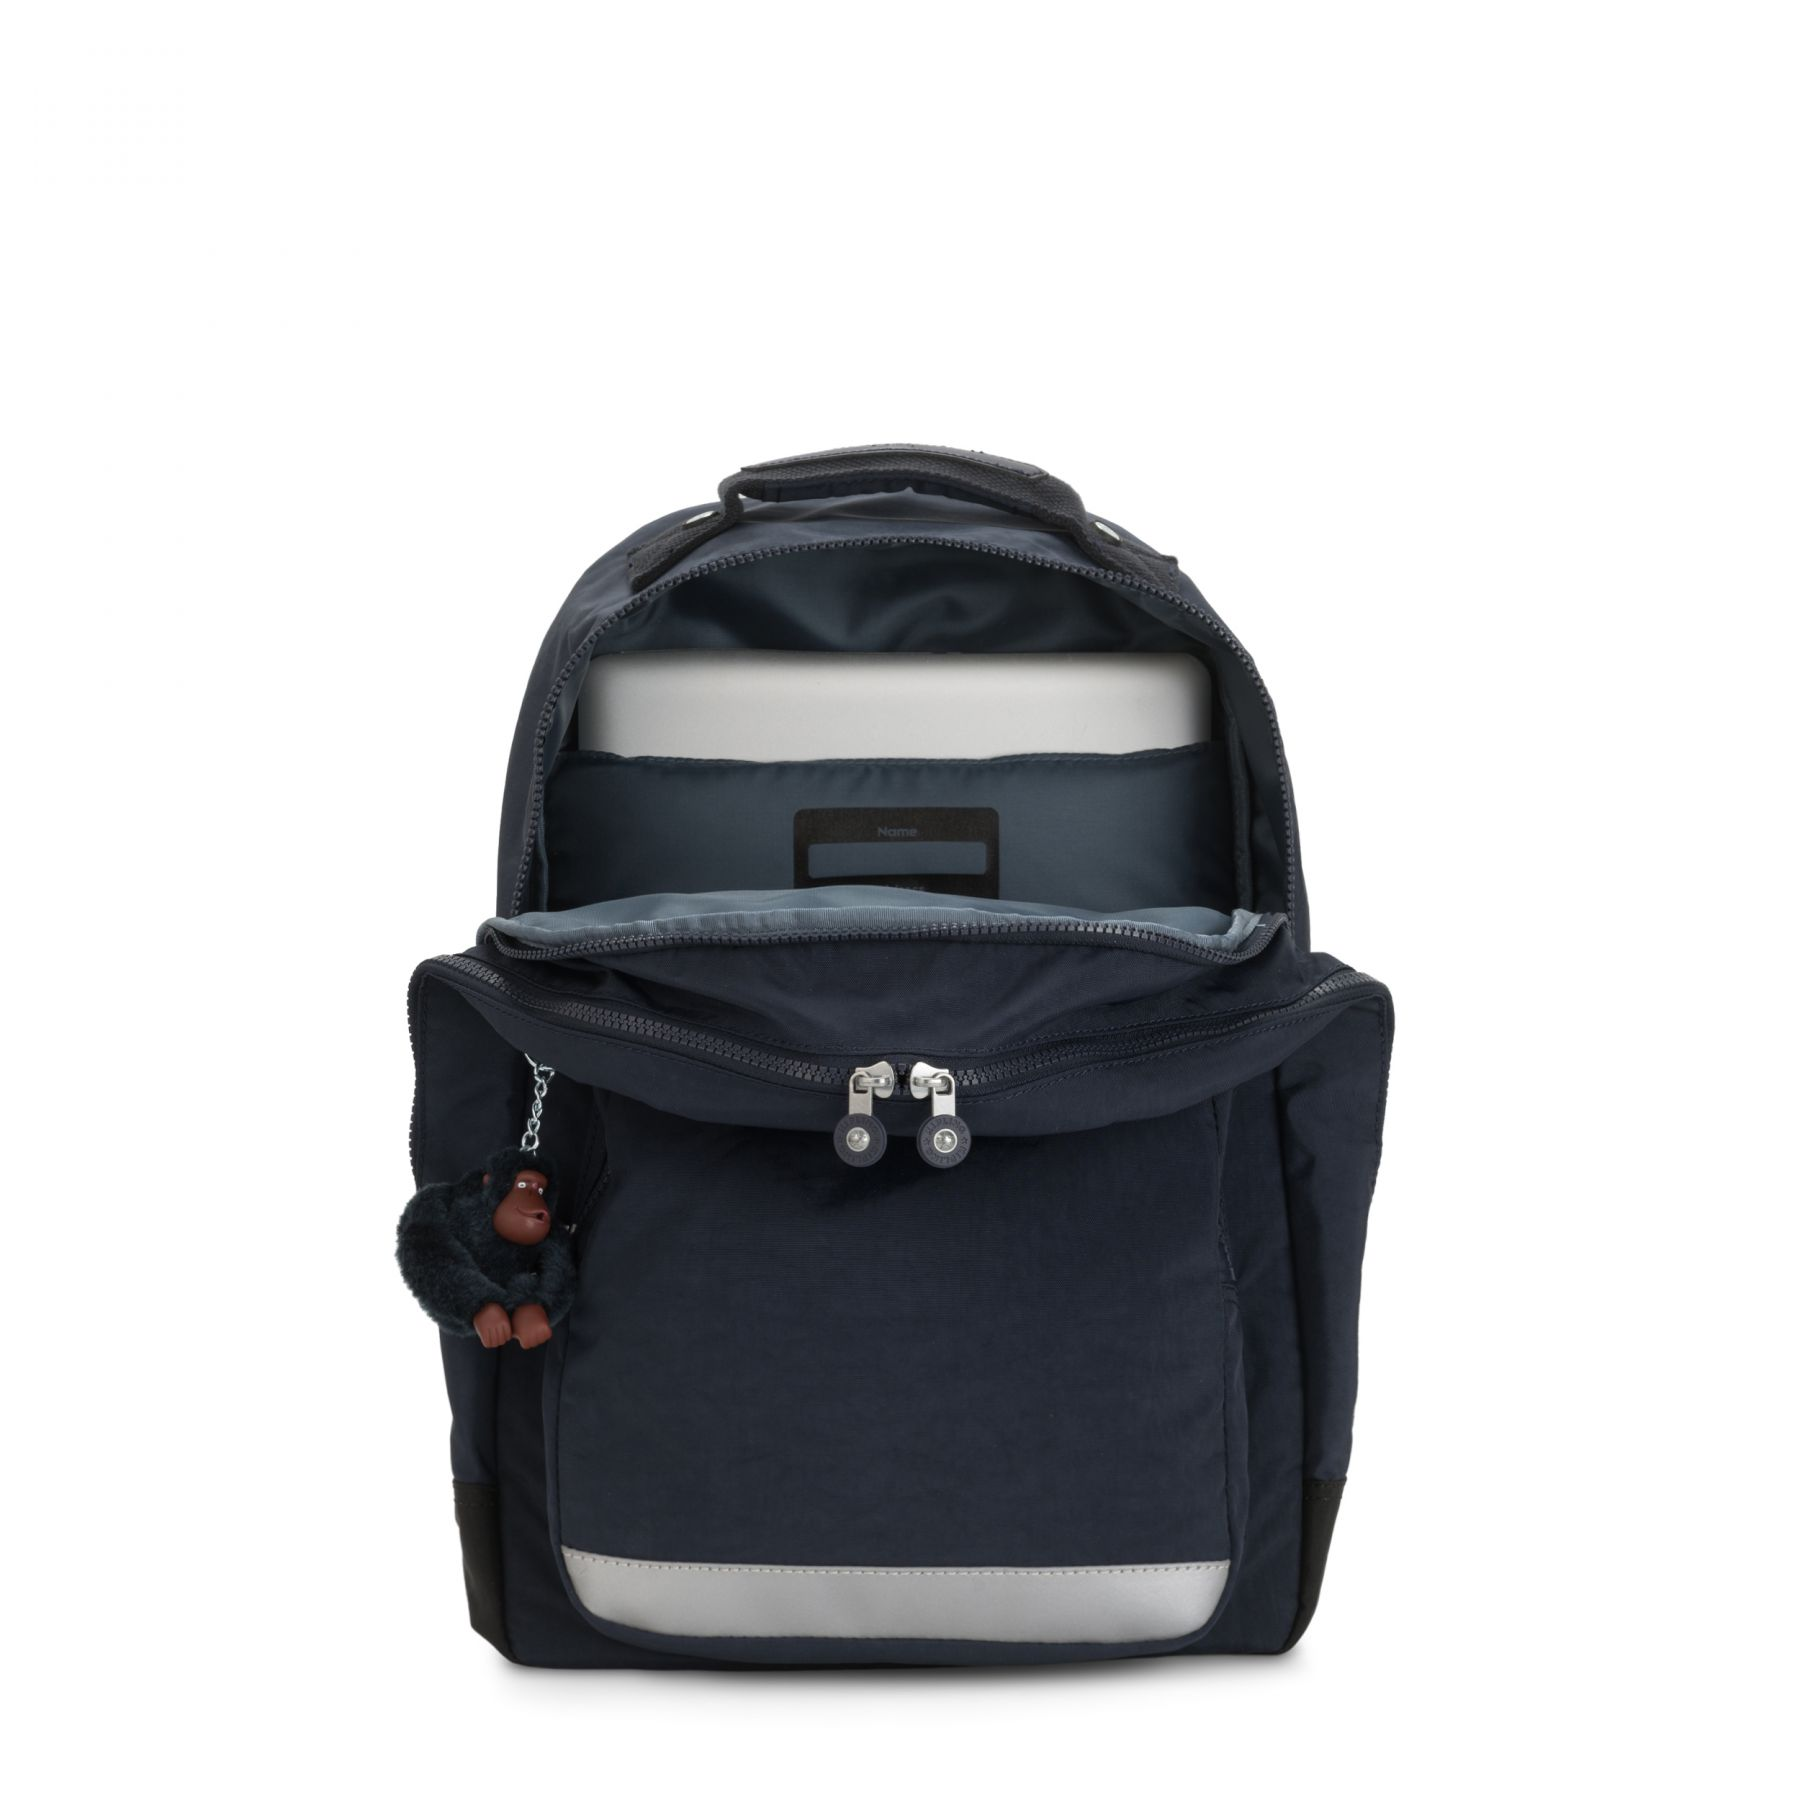 CLASS ROOM Latest Backpacks by Kipling - Inside view